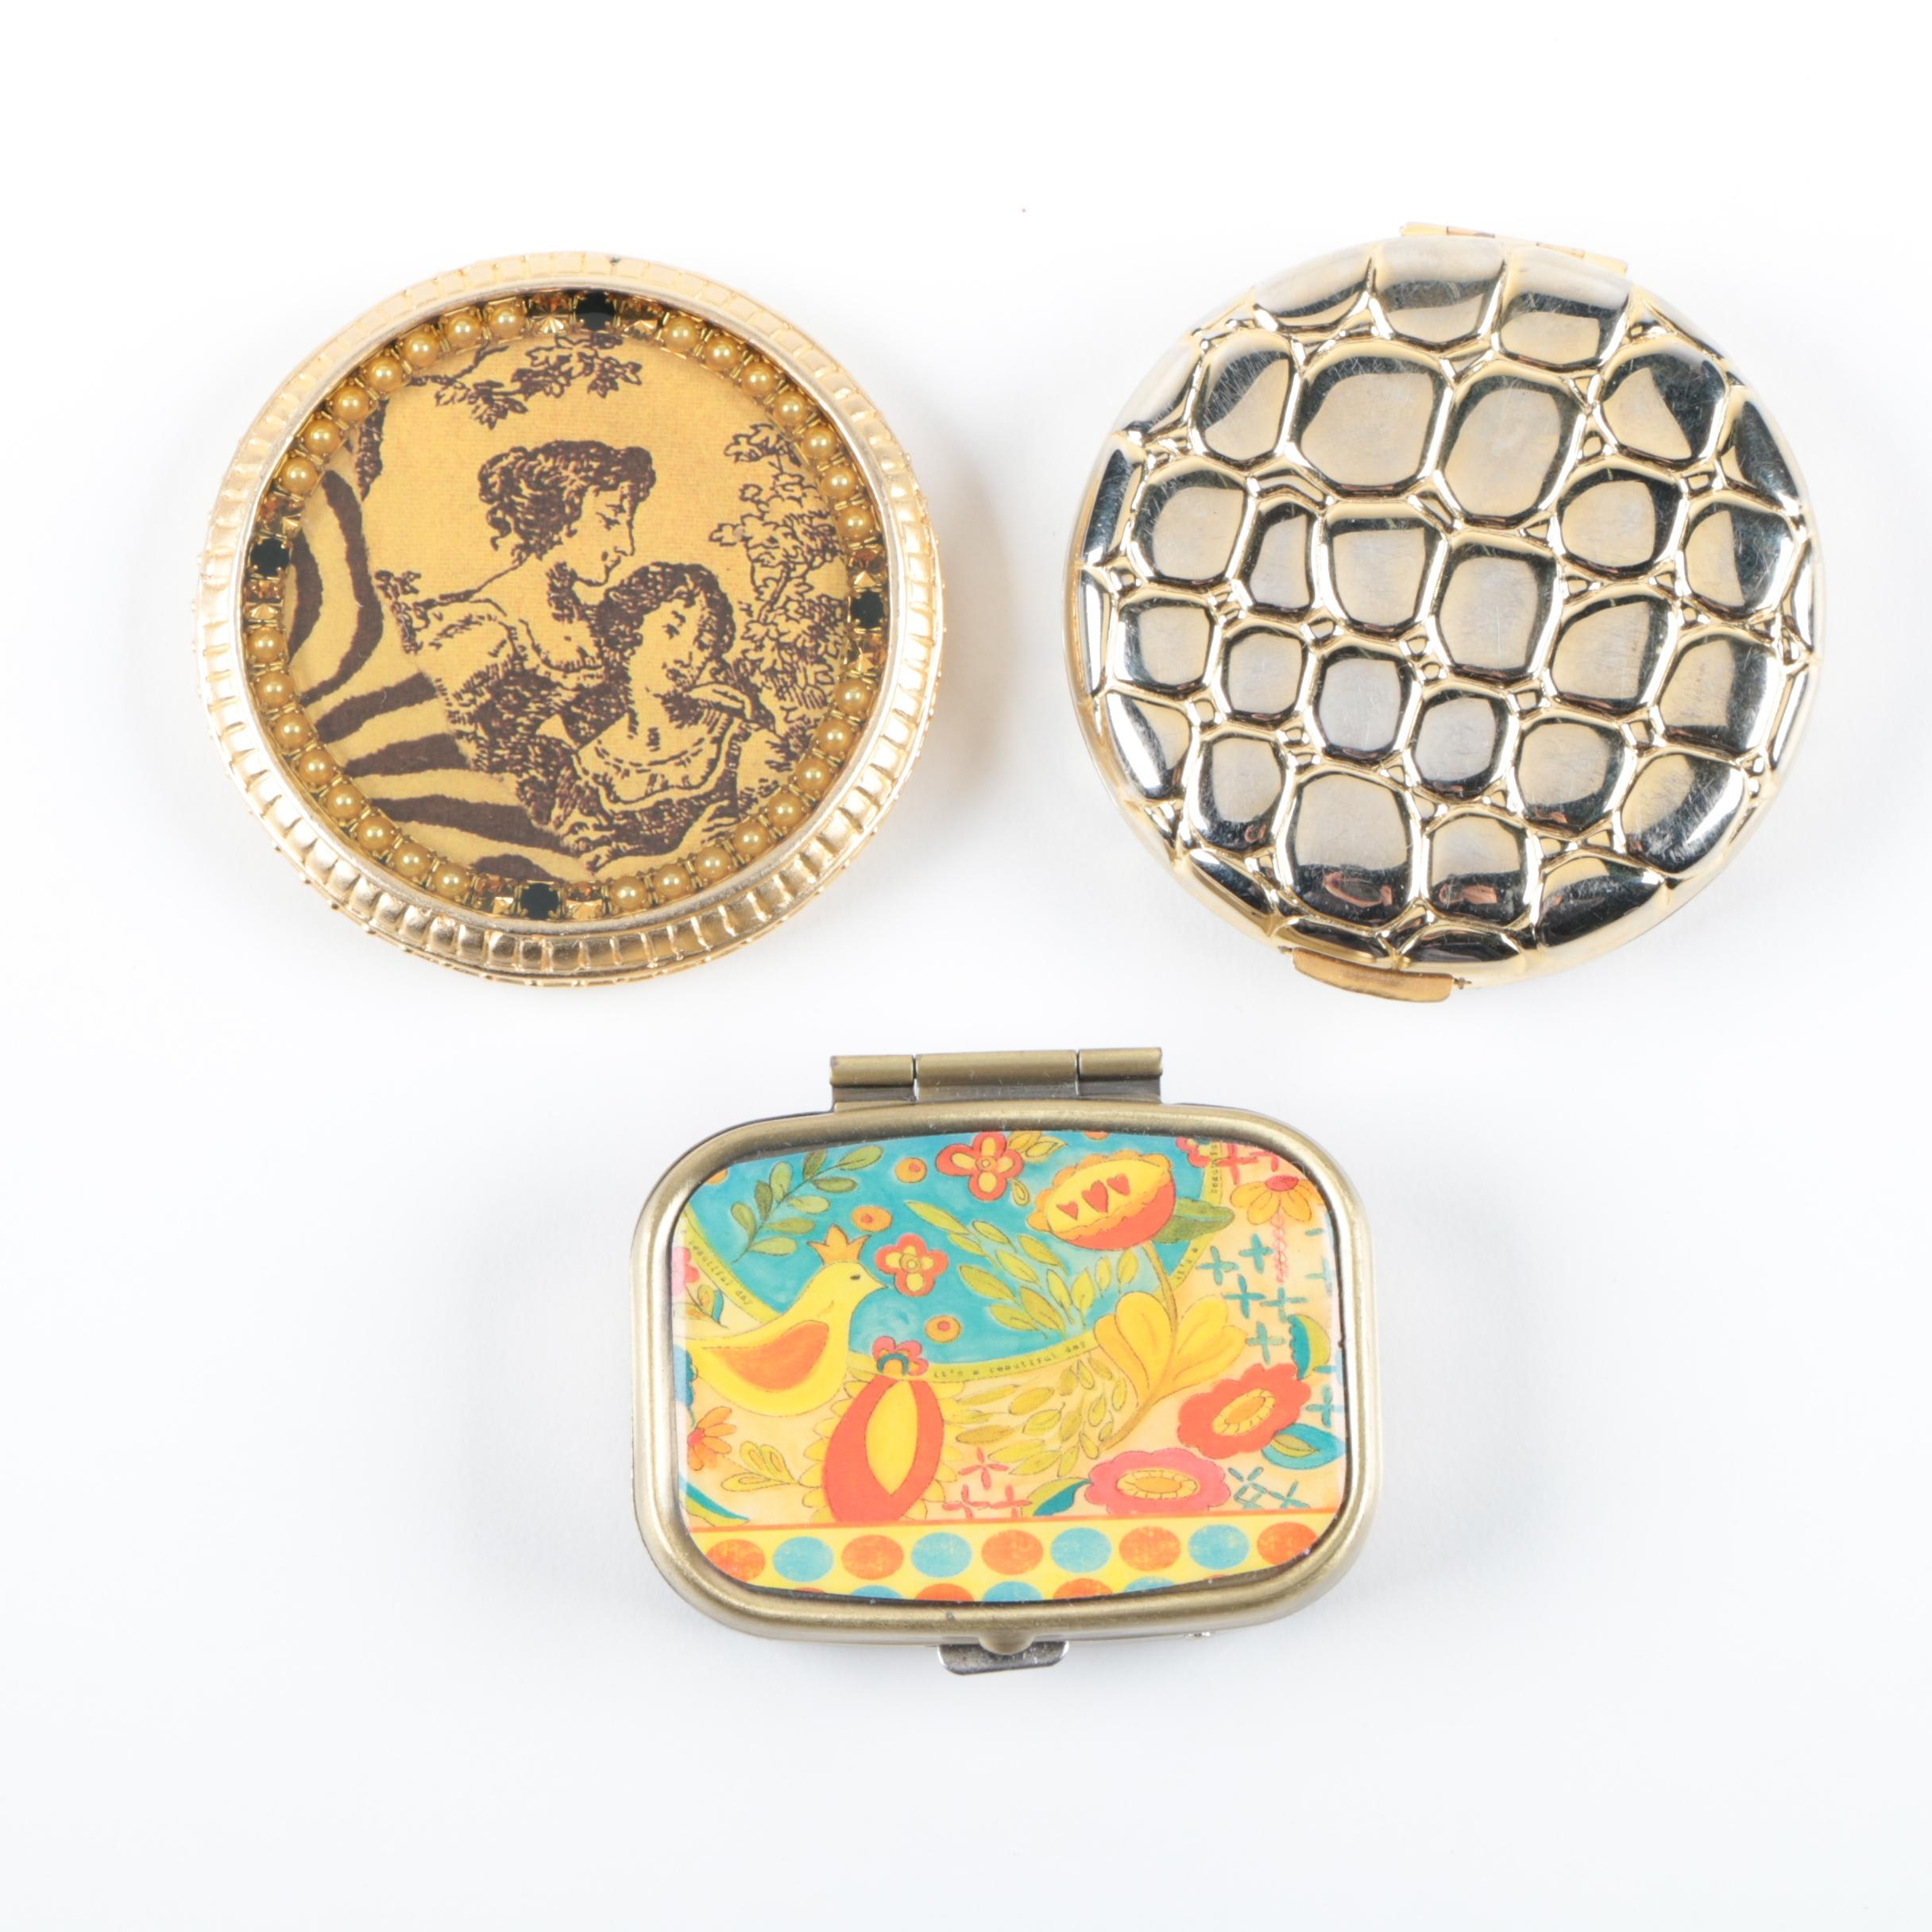 Gold Tone Mirror, Compact and Pillbox Including Estee Lauder